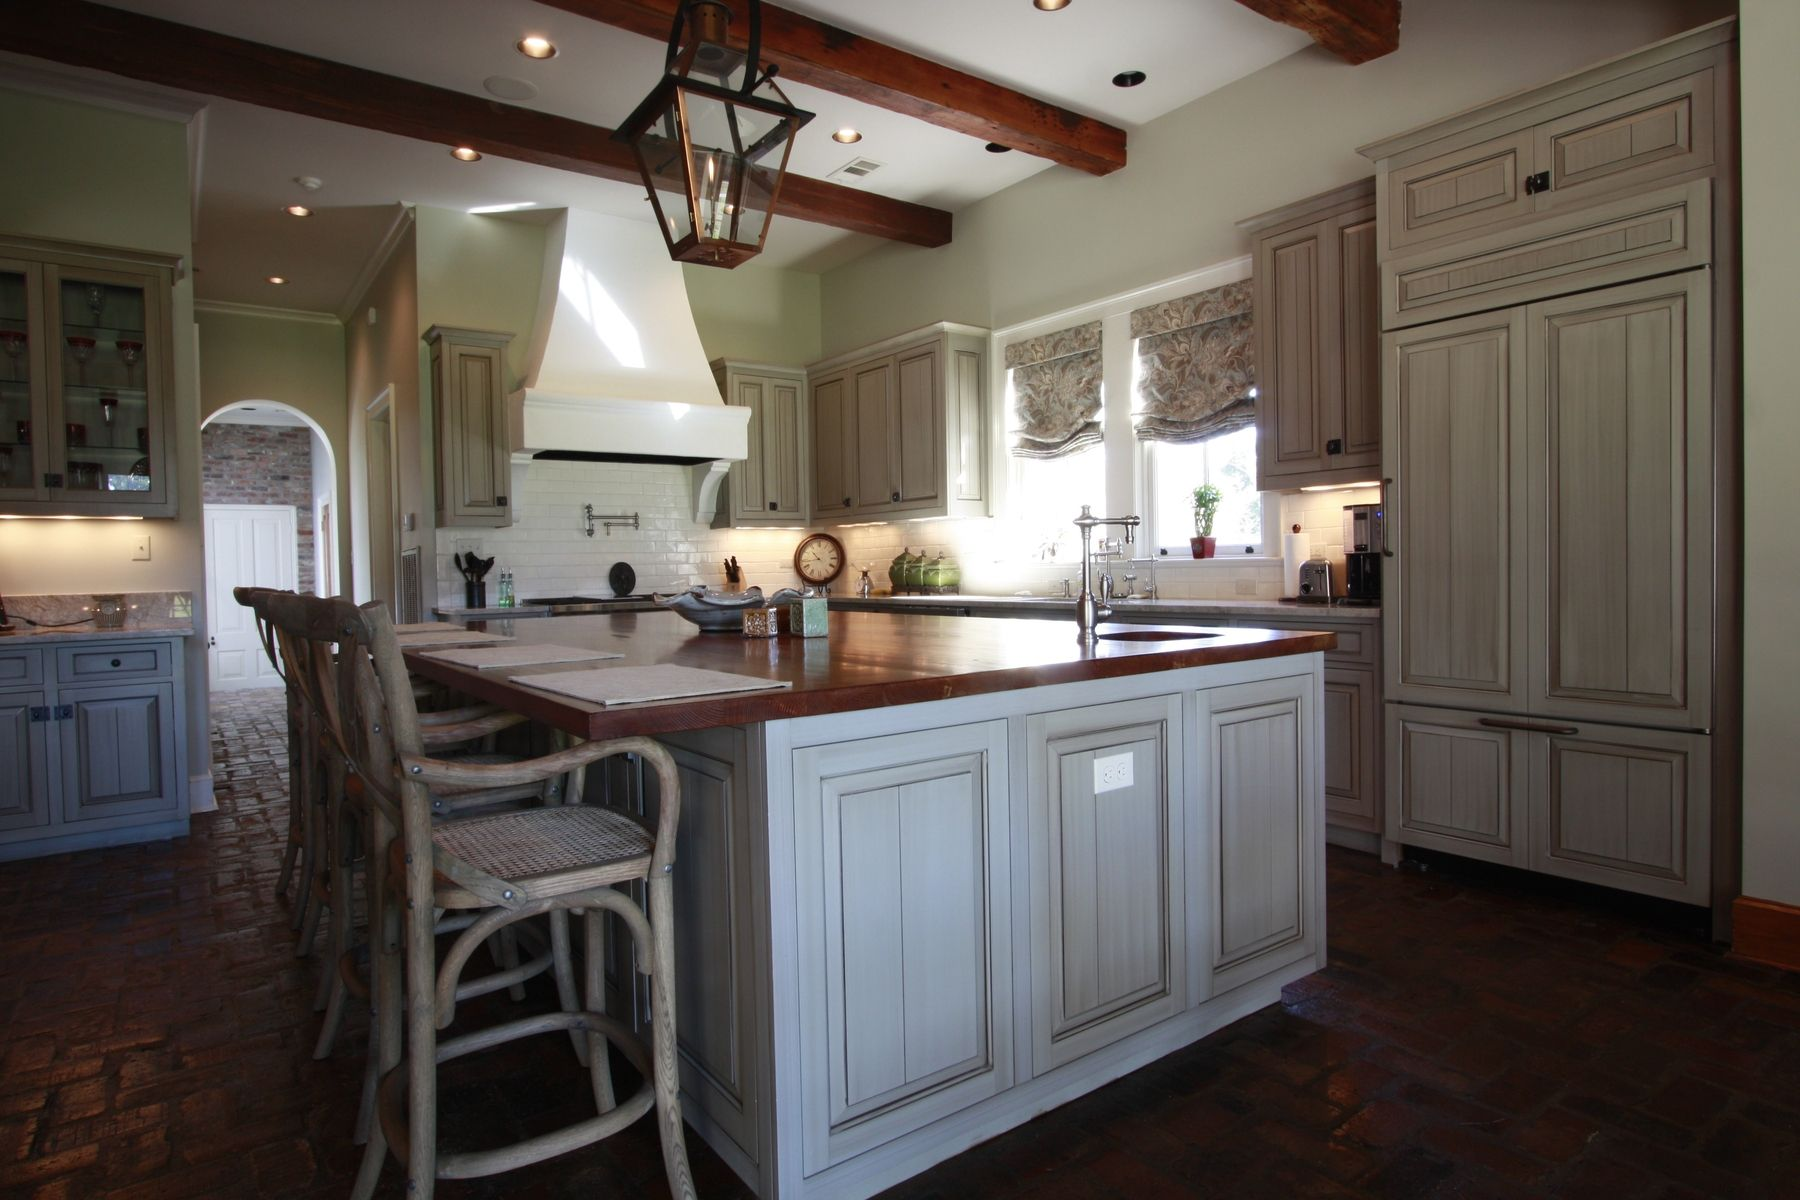 Handmade Custom Kitchen With Glazed Cabinets By Northshore